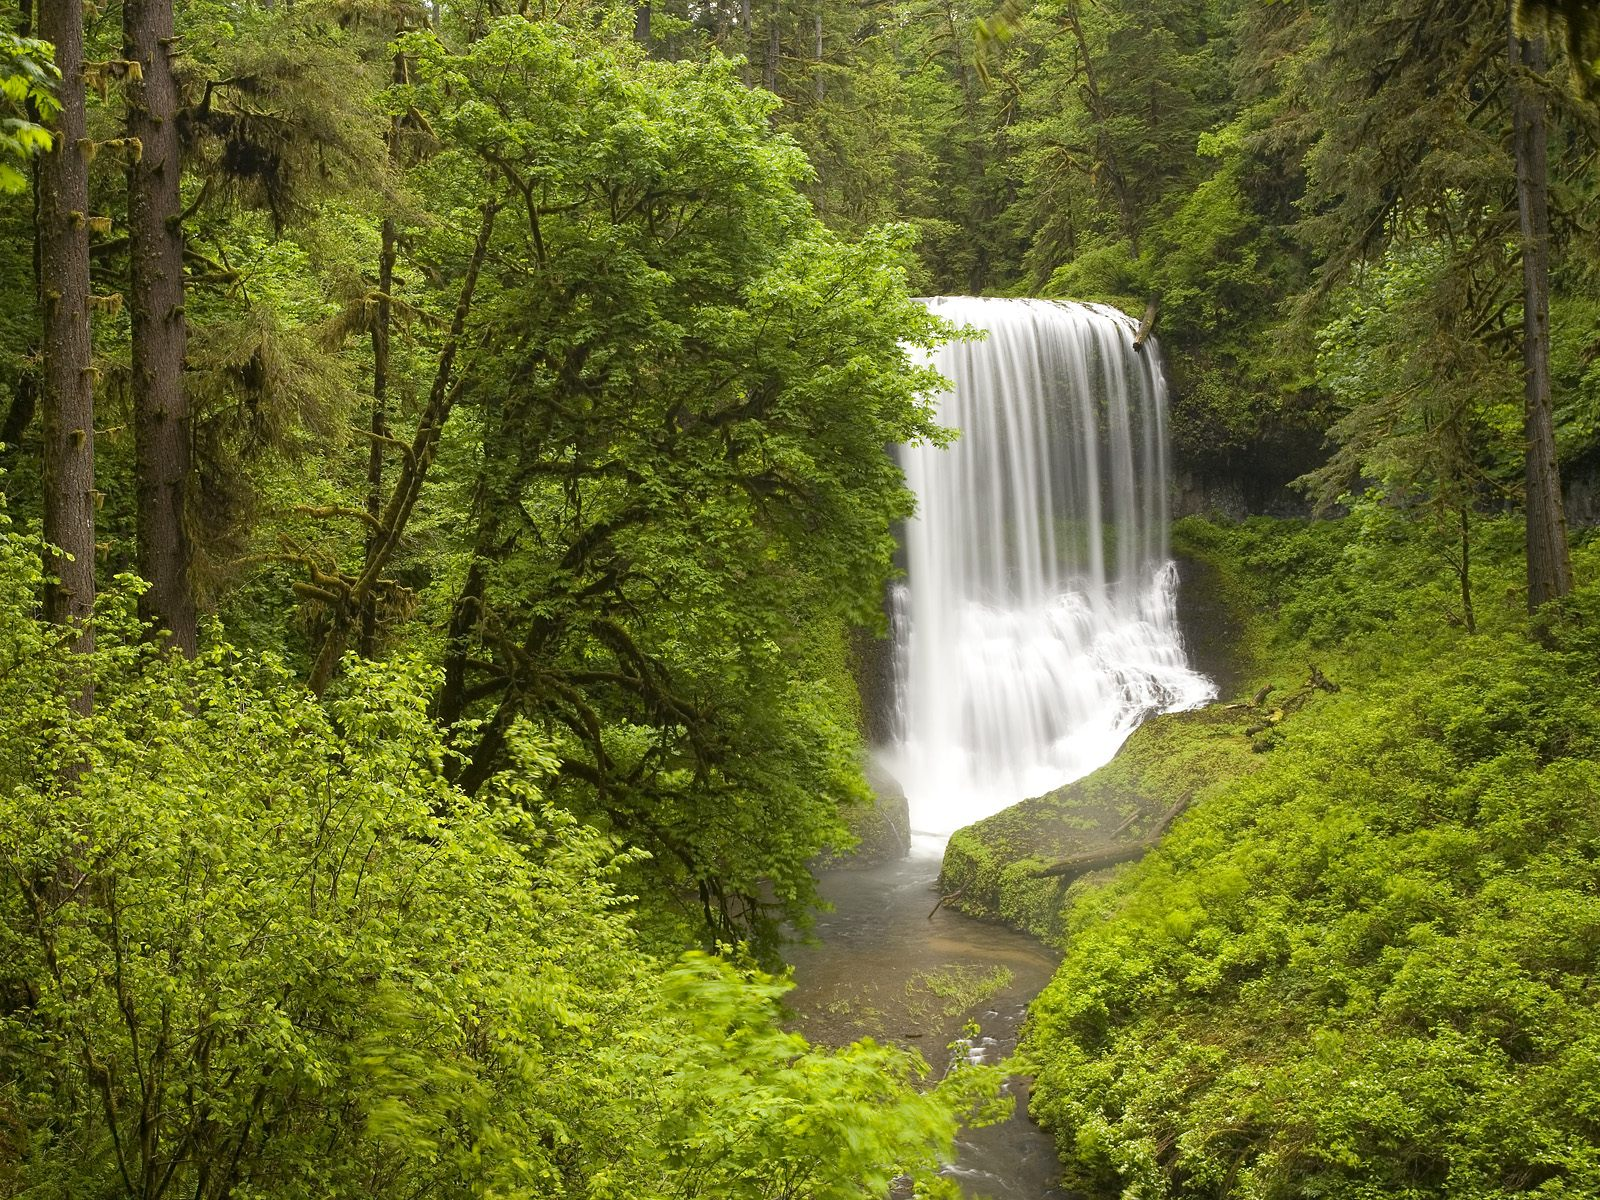 http://2.bp.blogspot.com/_EZ16vWYvHHg/S9HUbDlSw0I/AAAAAAAALIE/GBkZc1E4QFY/s1600/Middle+North+Falls,+Silver+Falls+State+Park+in+Spring,+Oregon.jpg